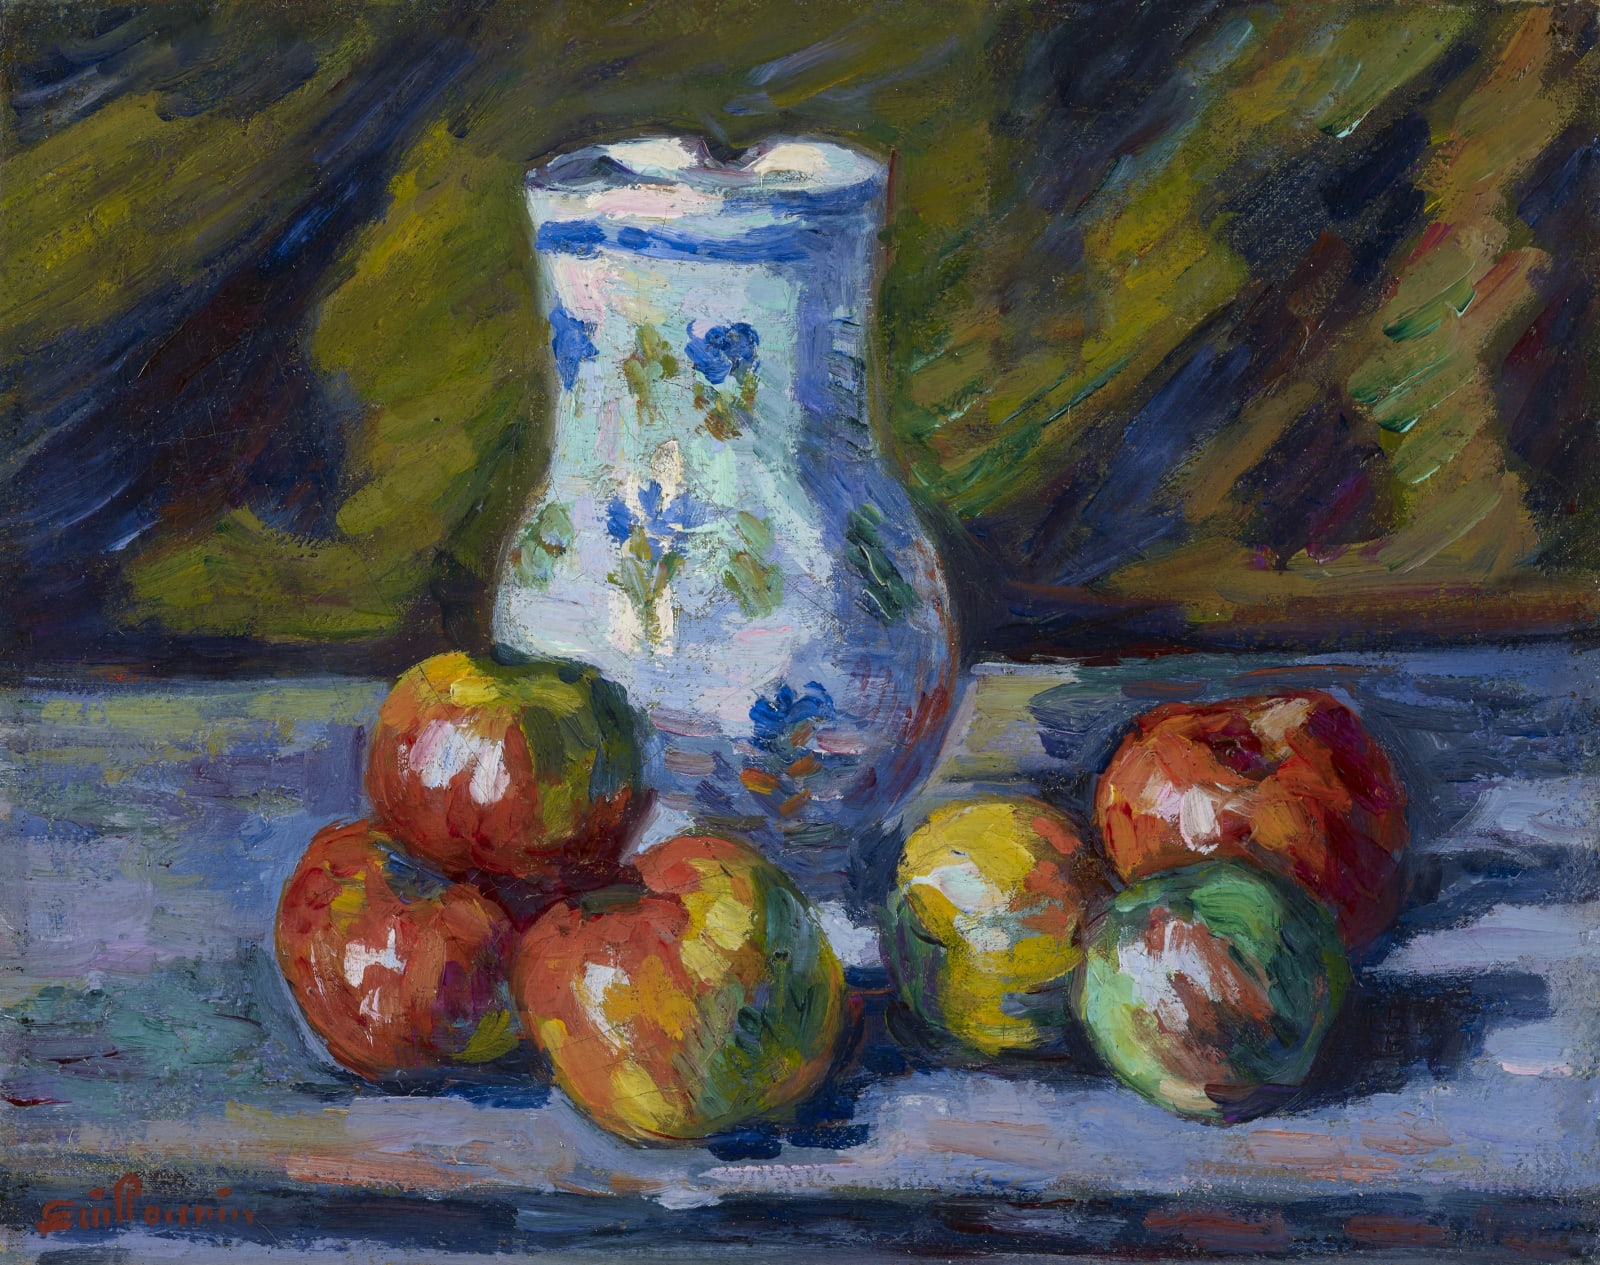 Armand Guillaumin Nature morte aux pommes, c.1880 Oil on canvas 12 x 24 cm 7 1/2 x 9 1/2 inches Signed lower left Guillaumin Sold by the gallery